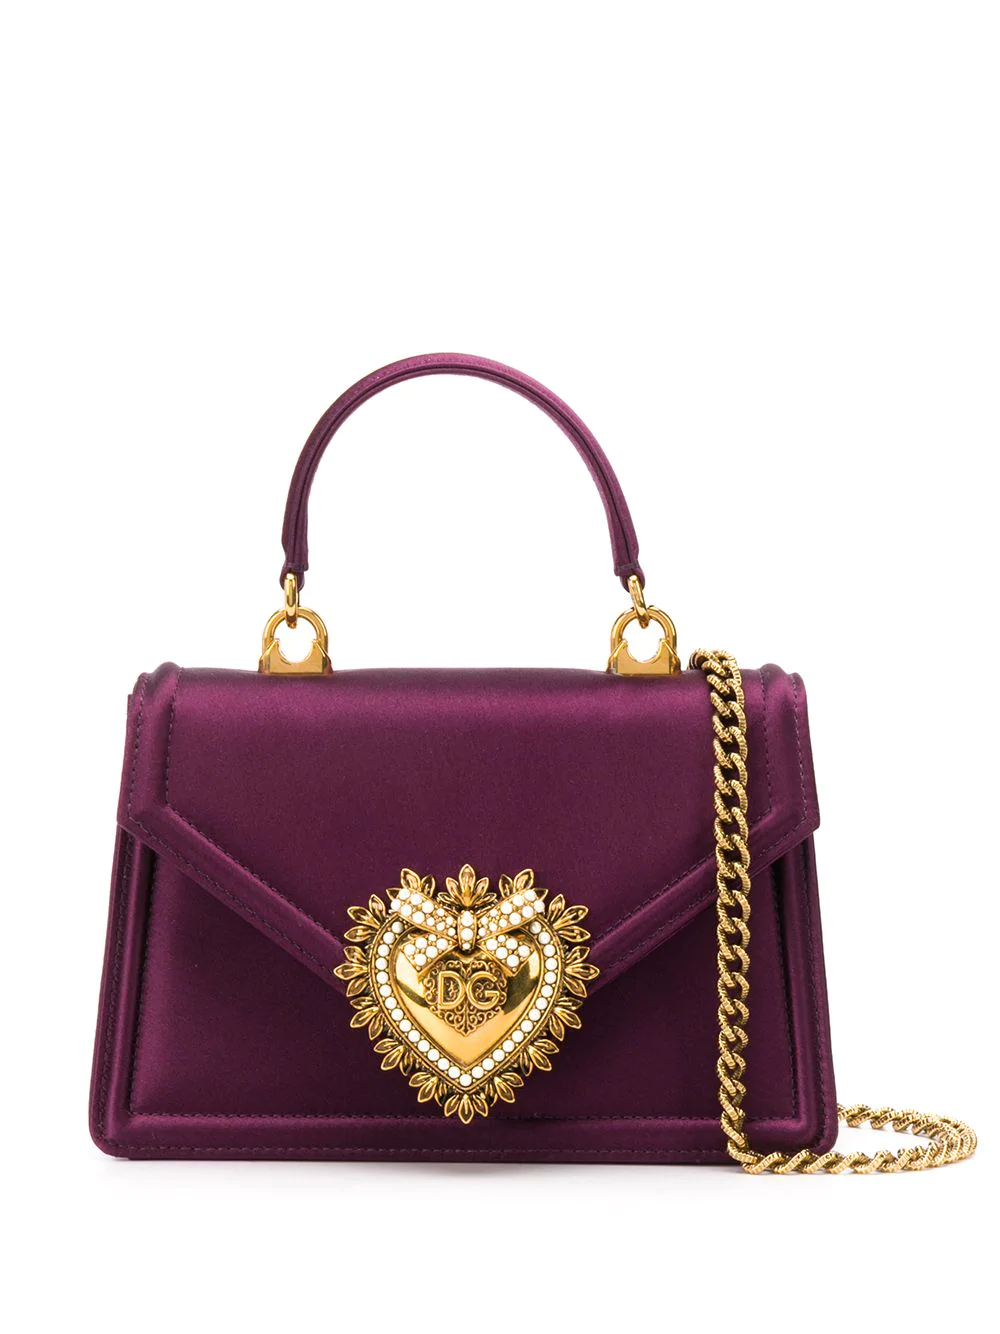 Dolce Gabbana Dg Amore Mini Bag Farfetch In 2020 Purple Bags Mini Bag Luxury Purses